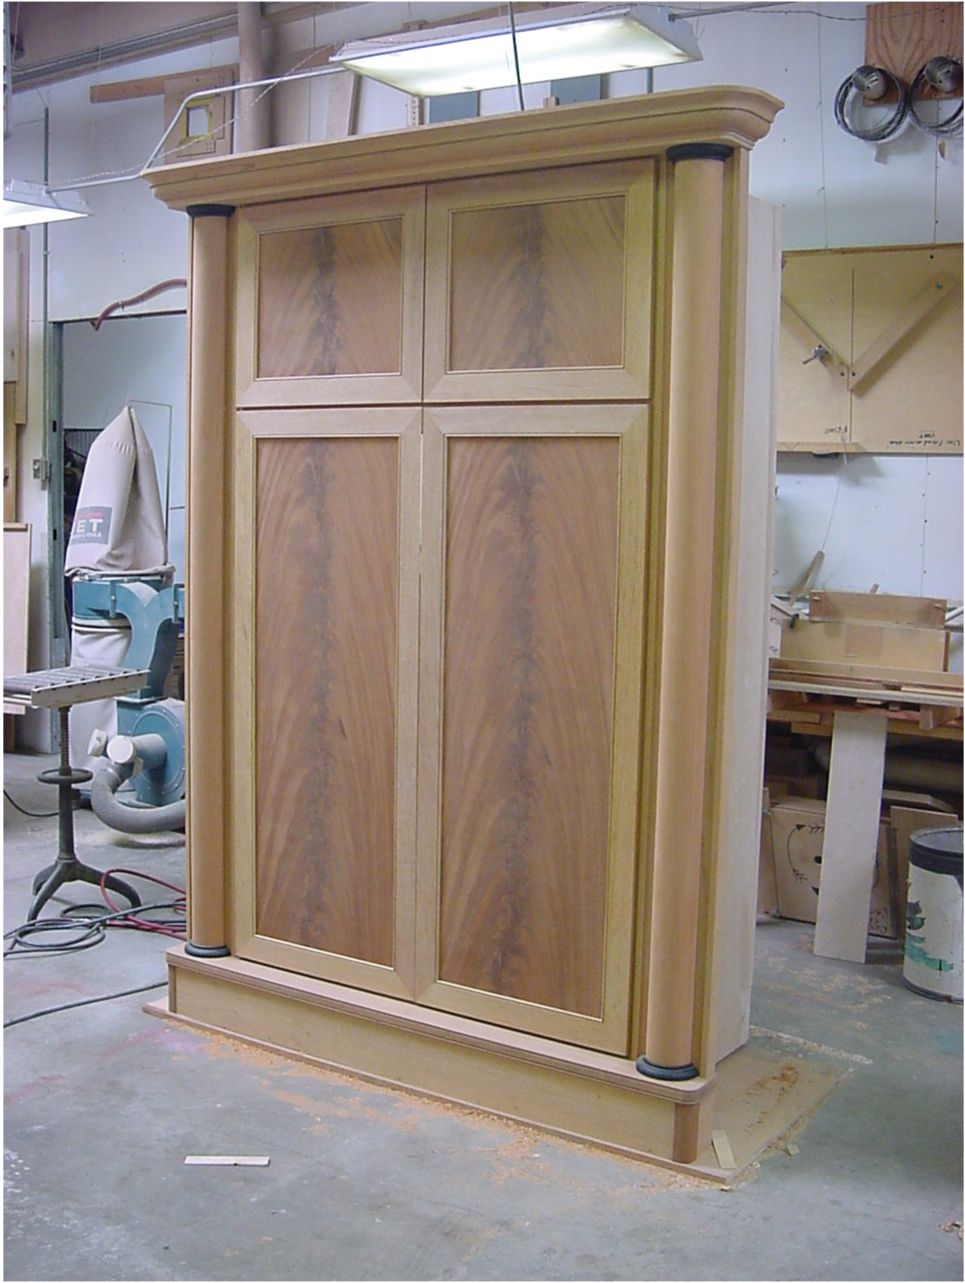 Cabinet in shop complete and unfinished.